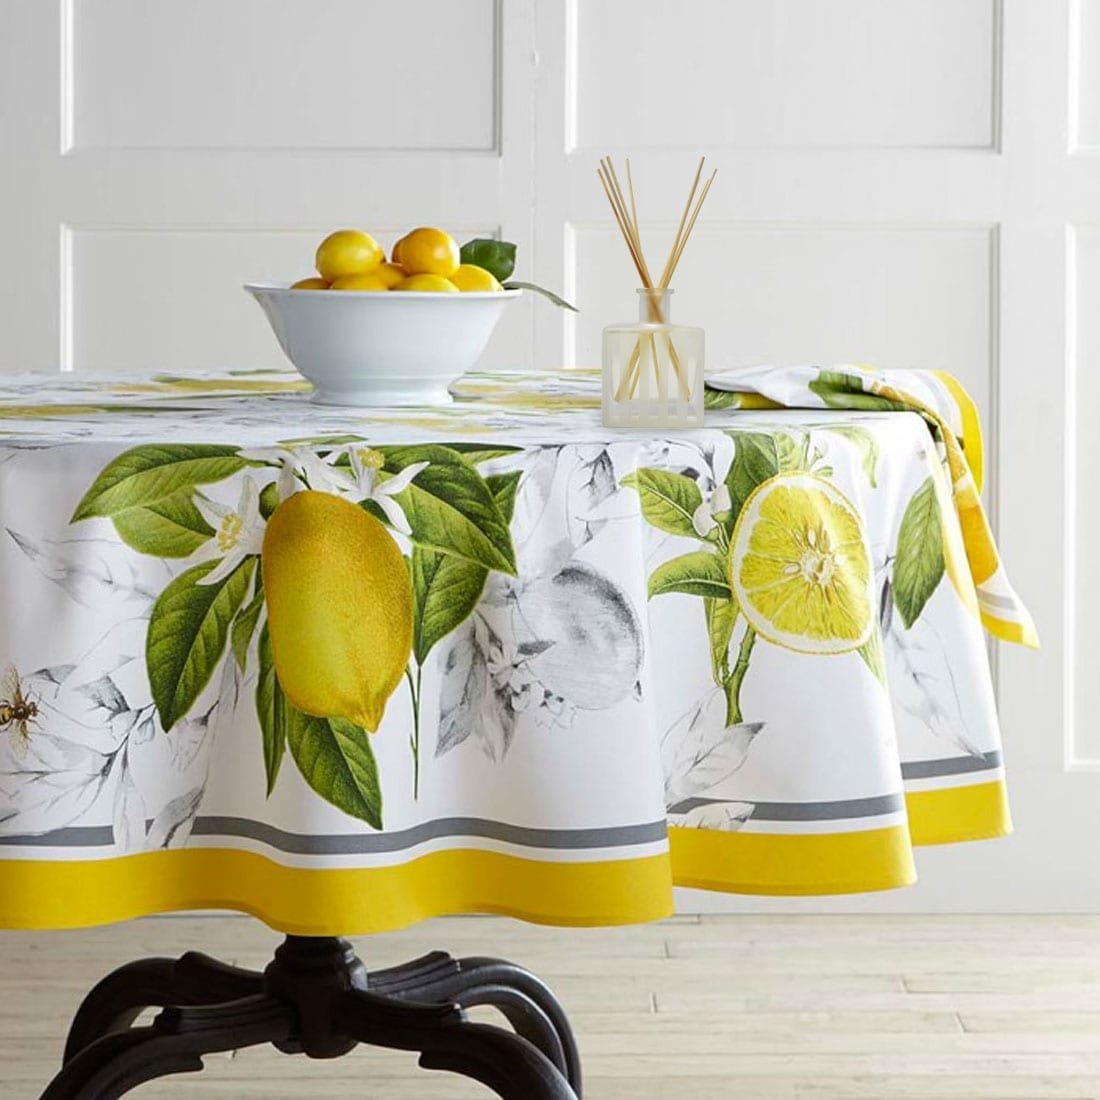 LOVSPA-Striped-Meyer-Lemon-3